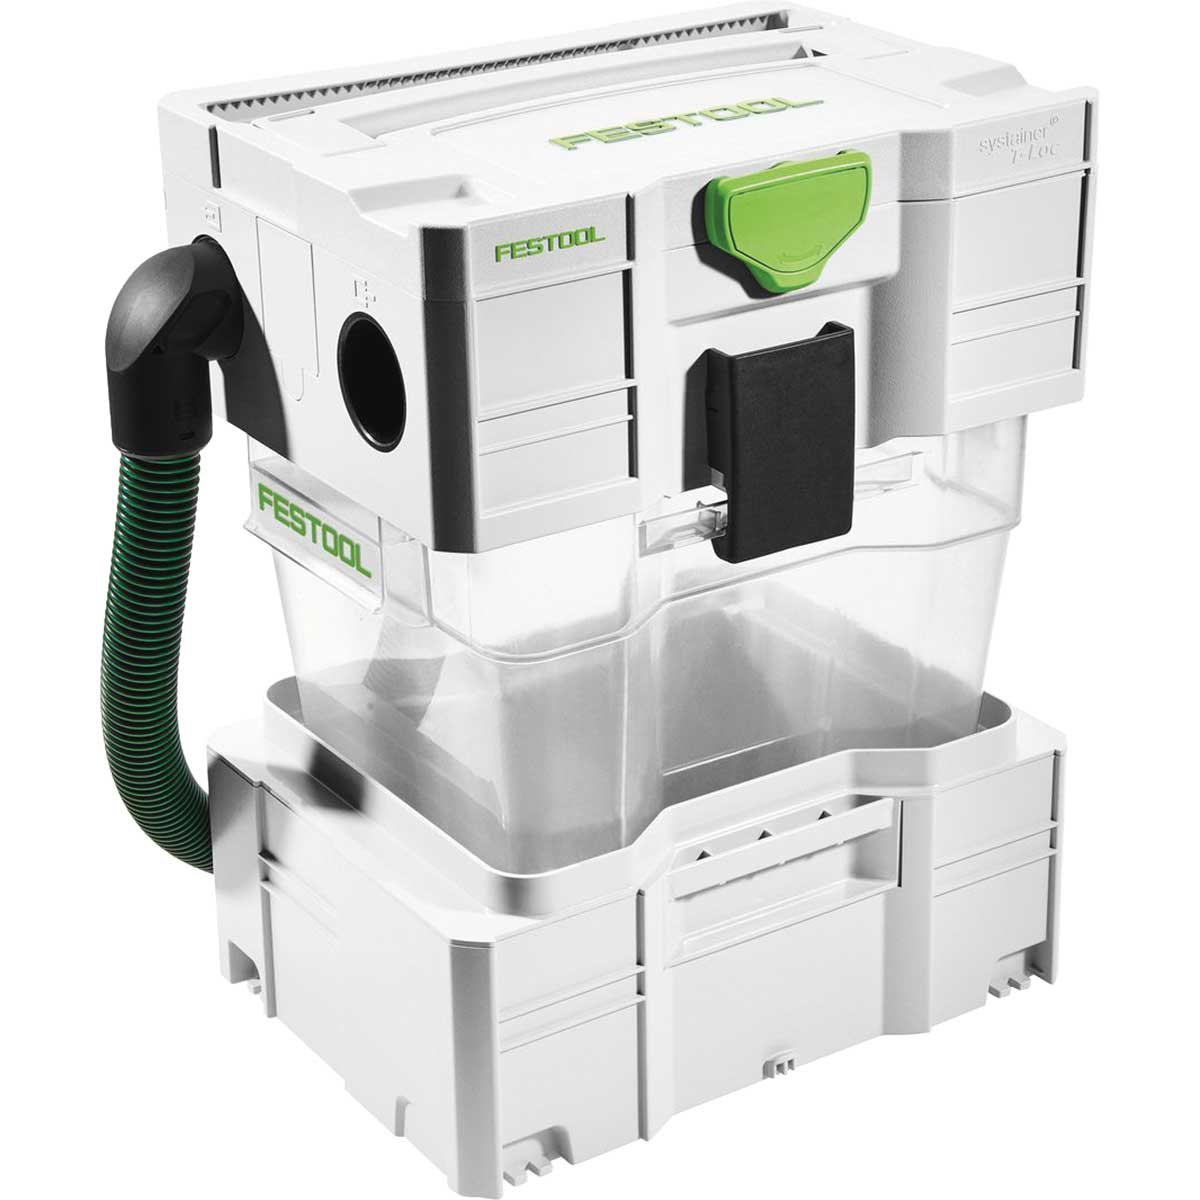 Festool CT Cyclone Dust Containment System